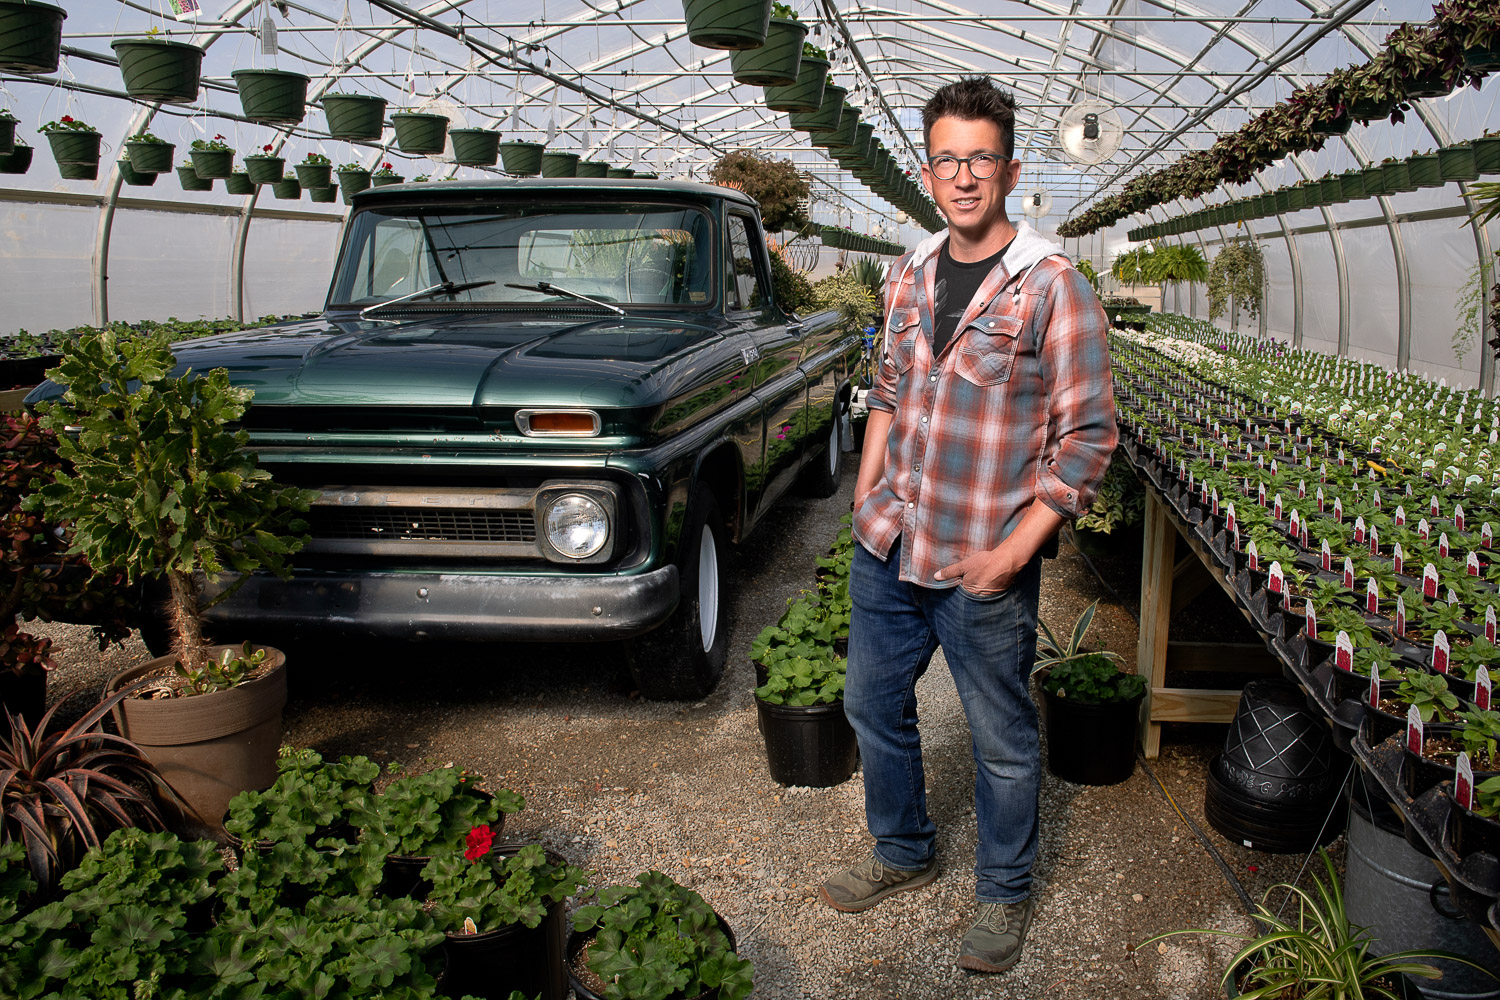 Greenhouse owner stands by old green truck in Callaway Fields Greenhouse